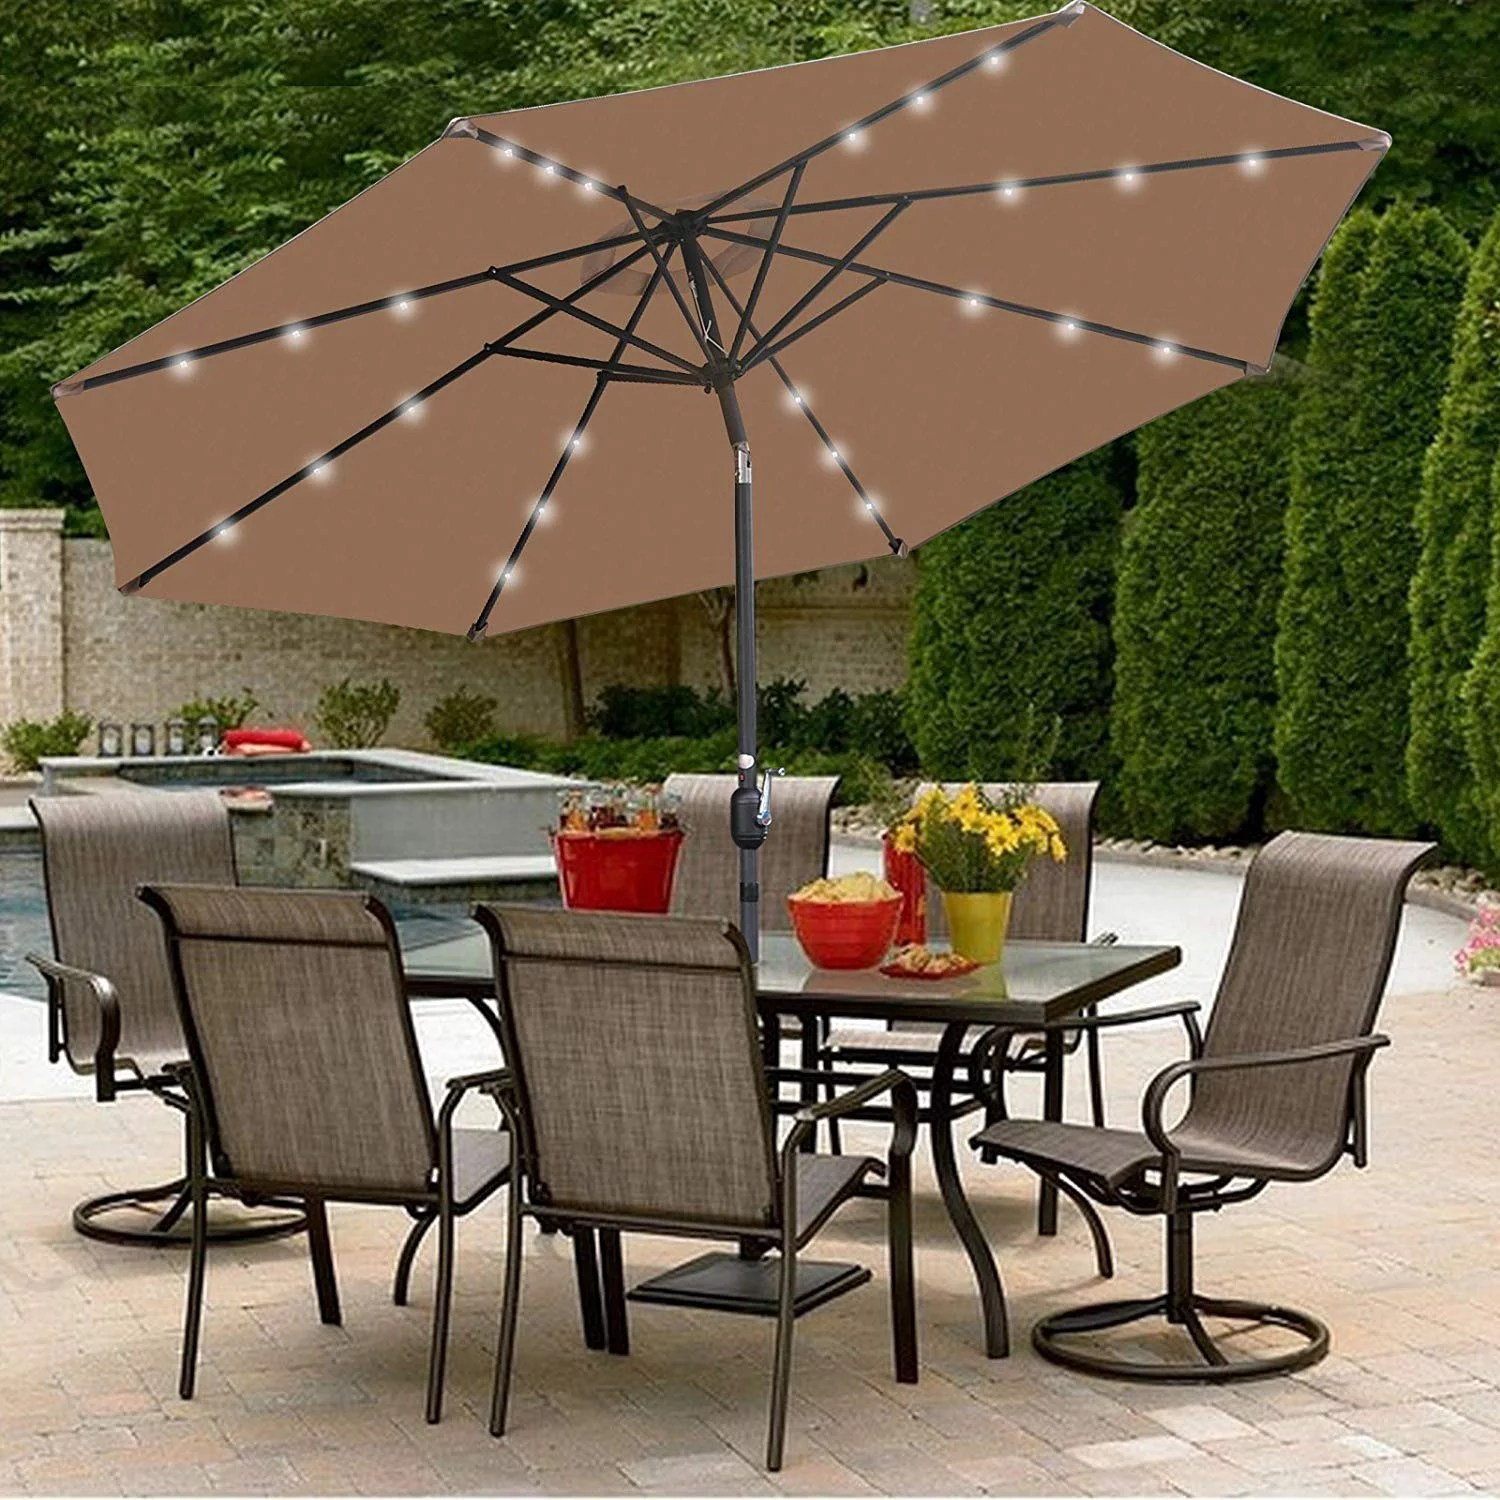 zeny 10 ft patio umbrella led solar power with tilt adjustment and crank lift system perfect for patio garden backyard deck poolside and more